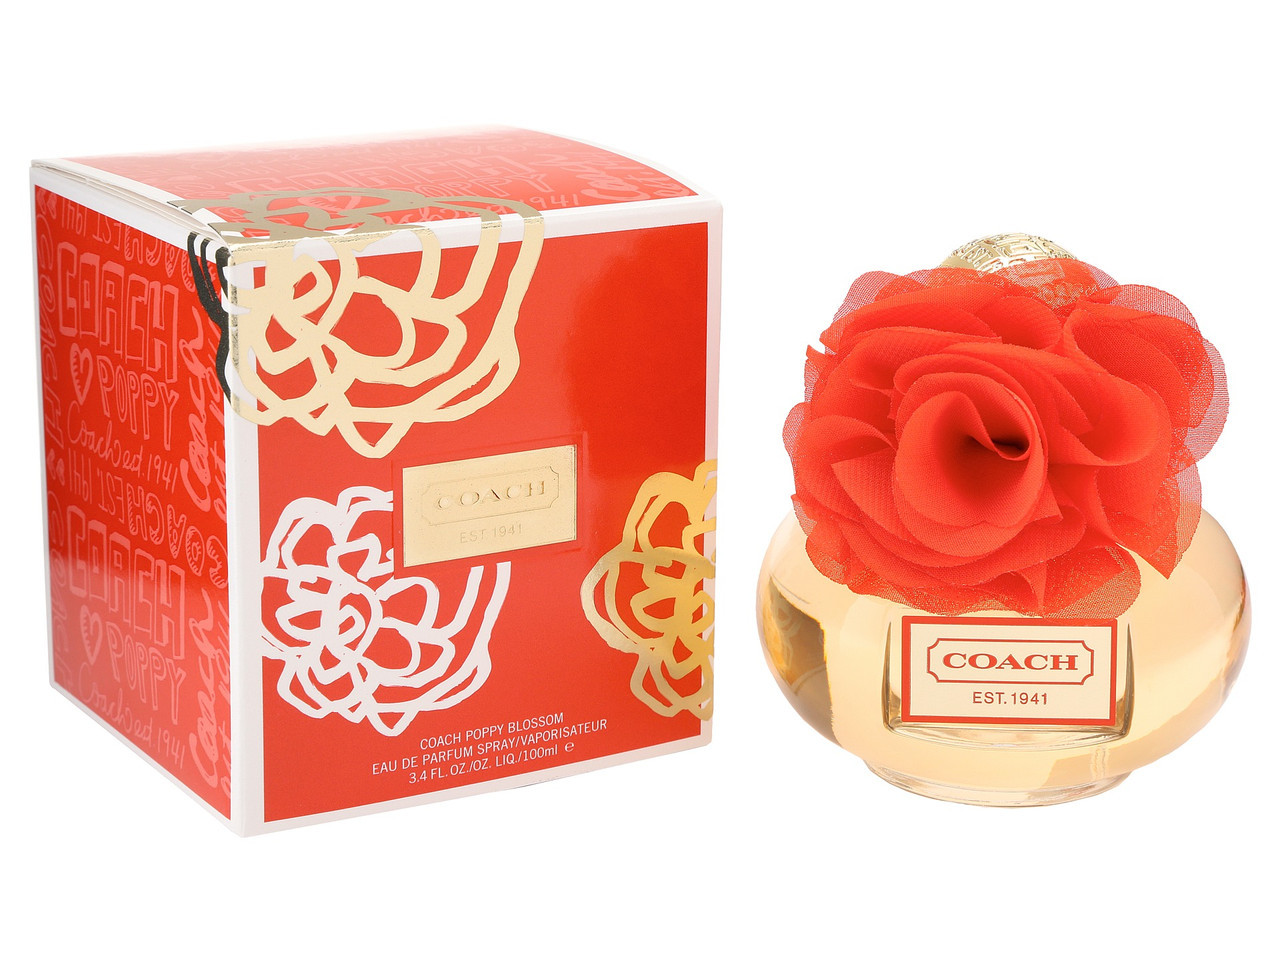 Coach Poppy Blossom edp 100ml